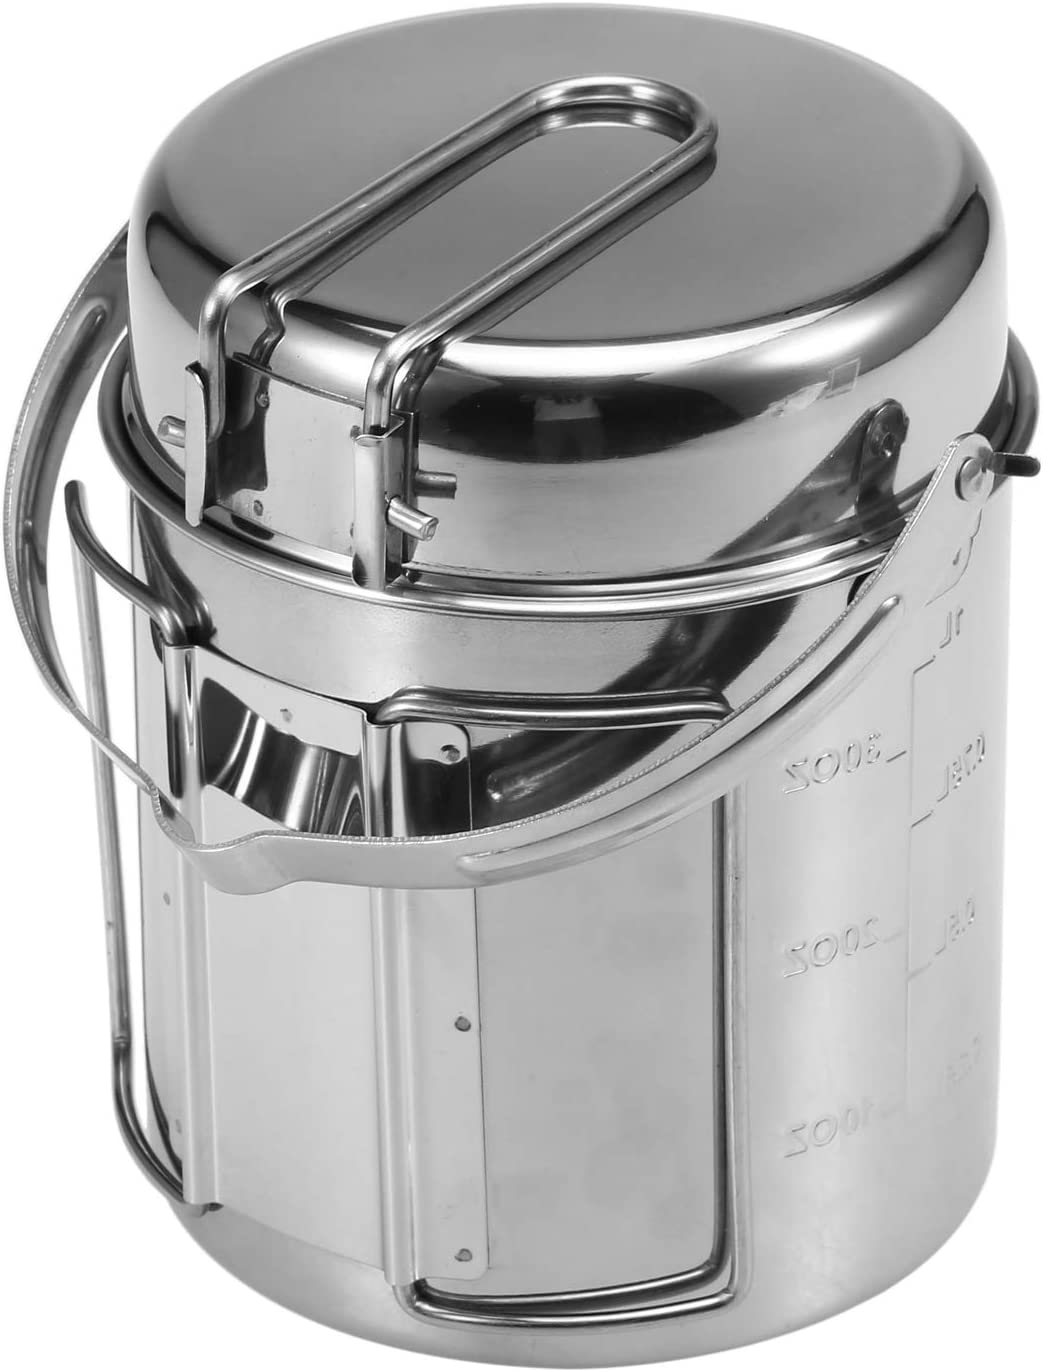 Lixada Camping Cooking Kettle 1L Stainless Steel Cookware Pot with Foldable Handle for Outdoor Camping Backpacking Picnic Hiking